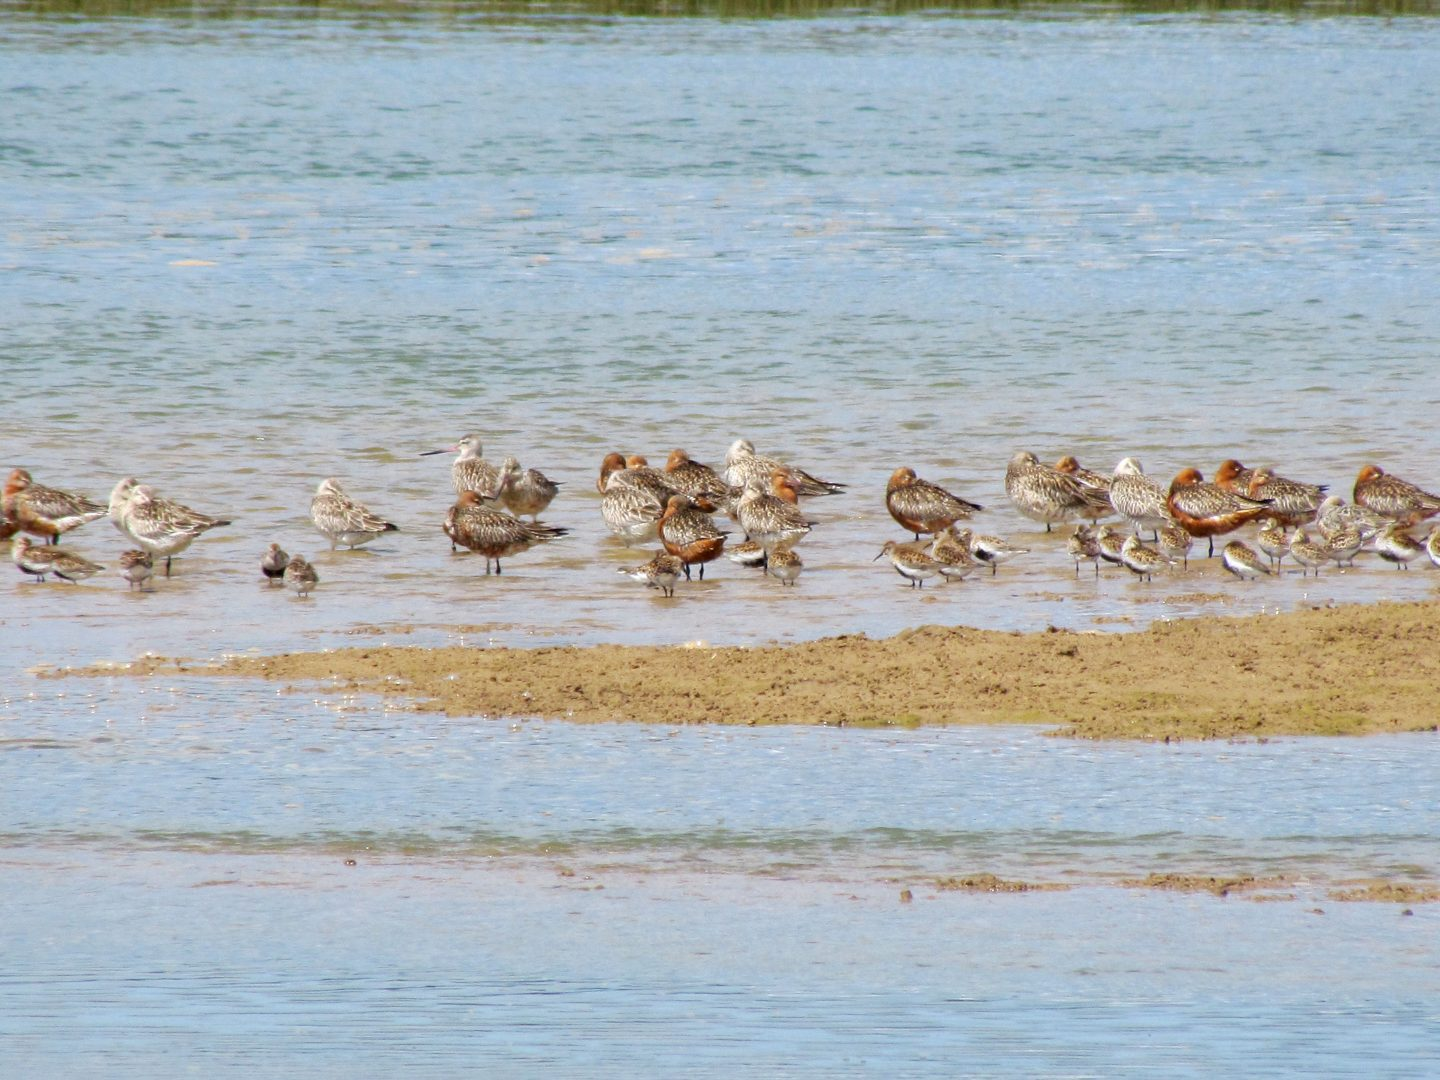 Waders resting in the water